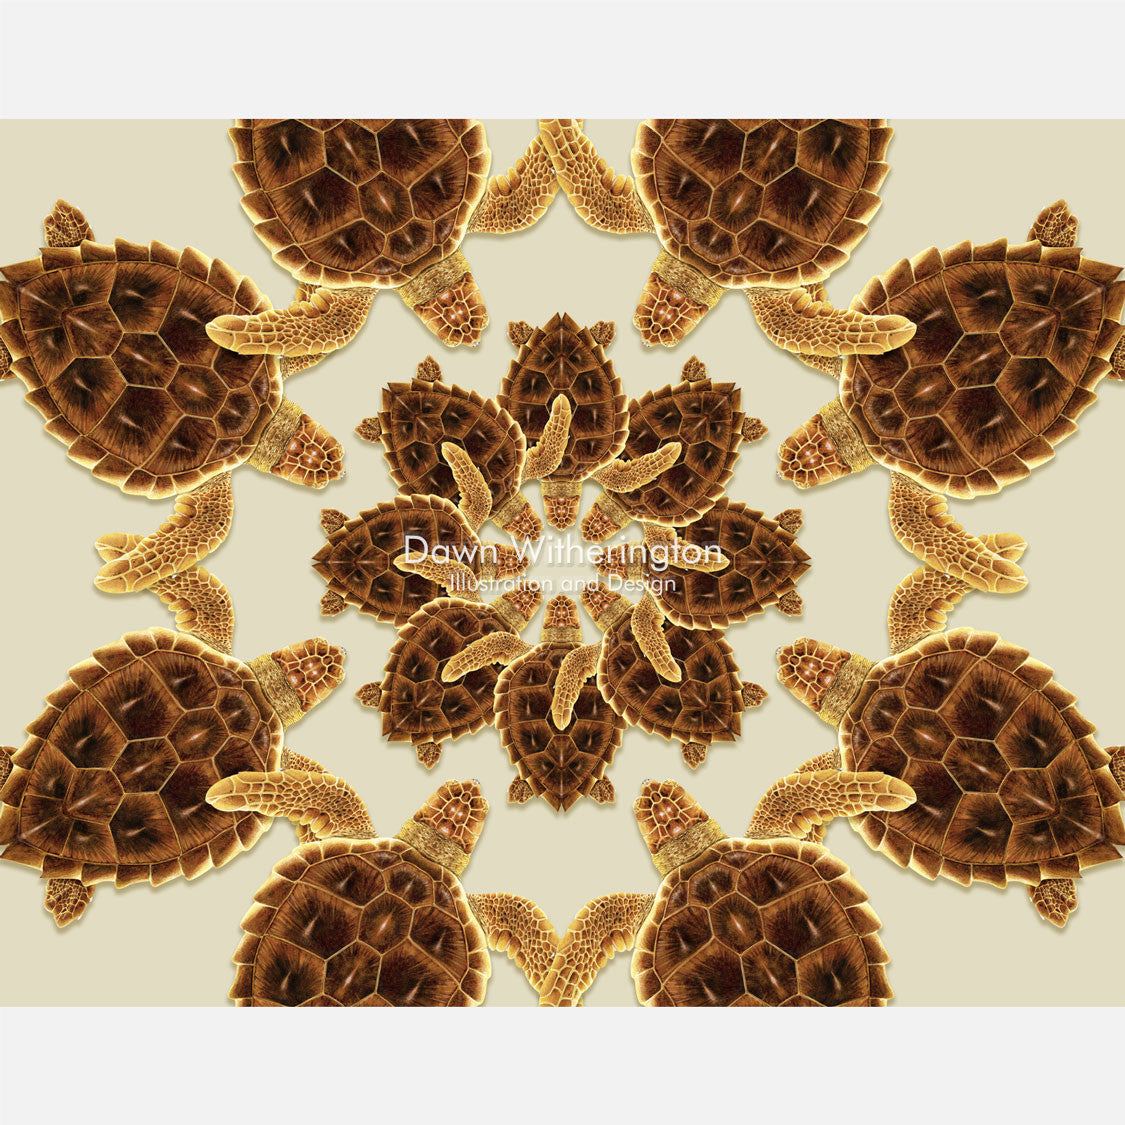 This beautiful design is of a kaleidoscopic graphic of loggerhead sea turtles, Caretta caretta.